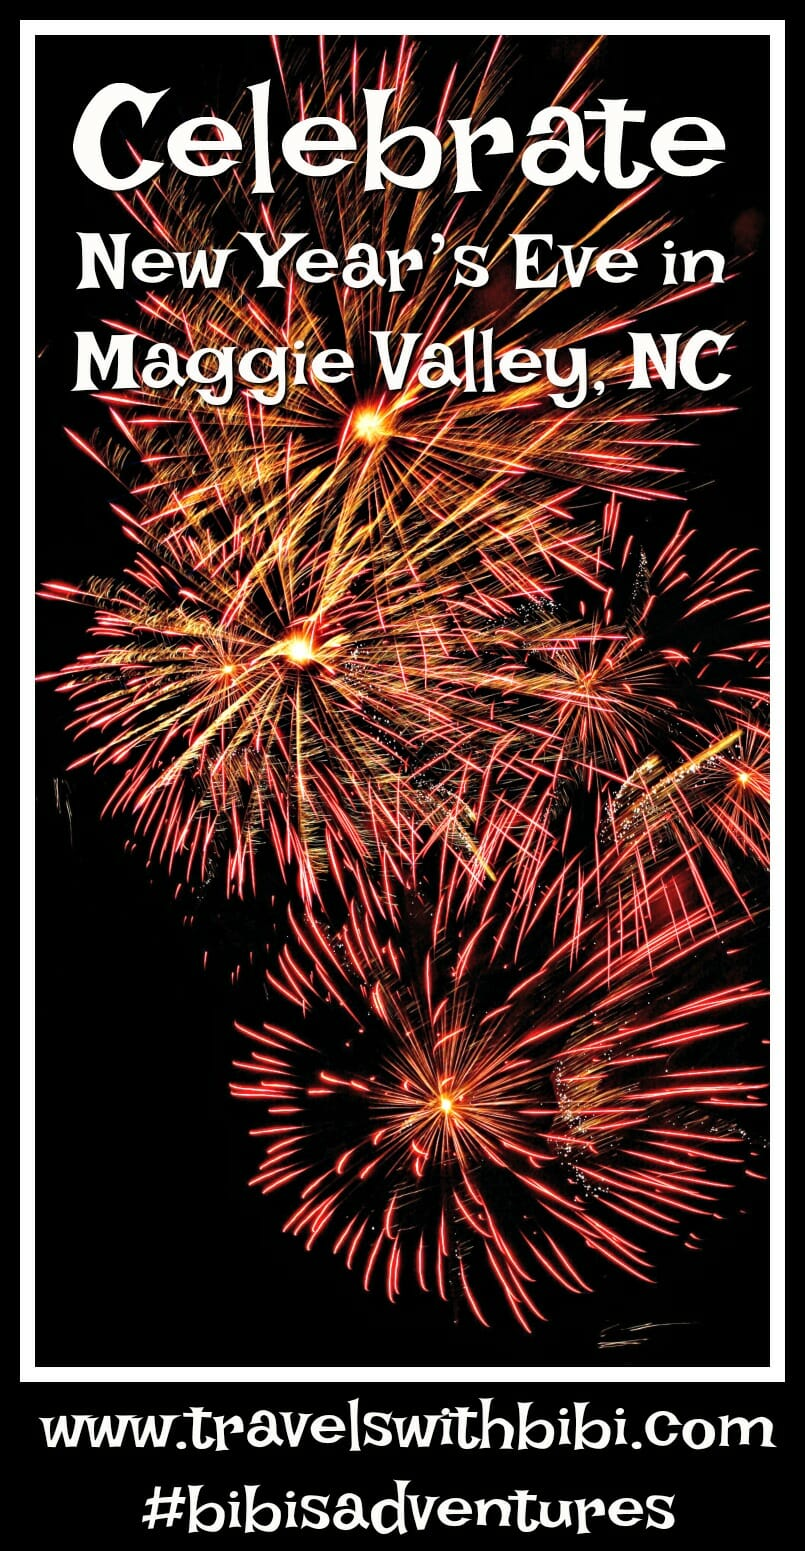 Ringing in 2020: Join The Fun and Celebrate New Year's Eve in Maggie Valley, NC